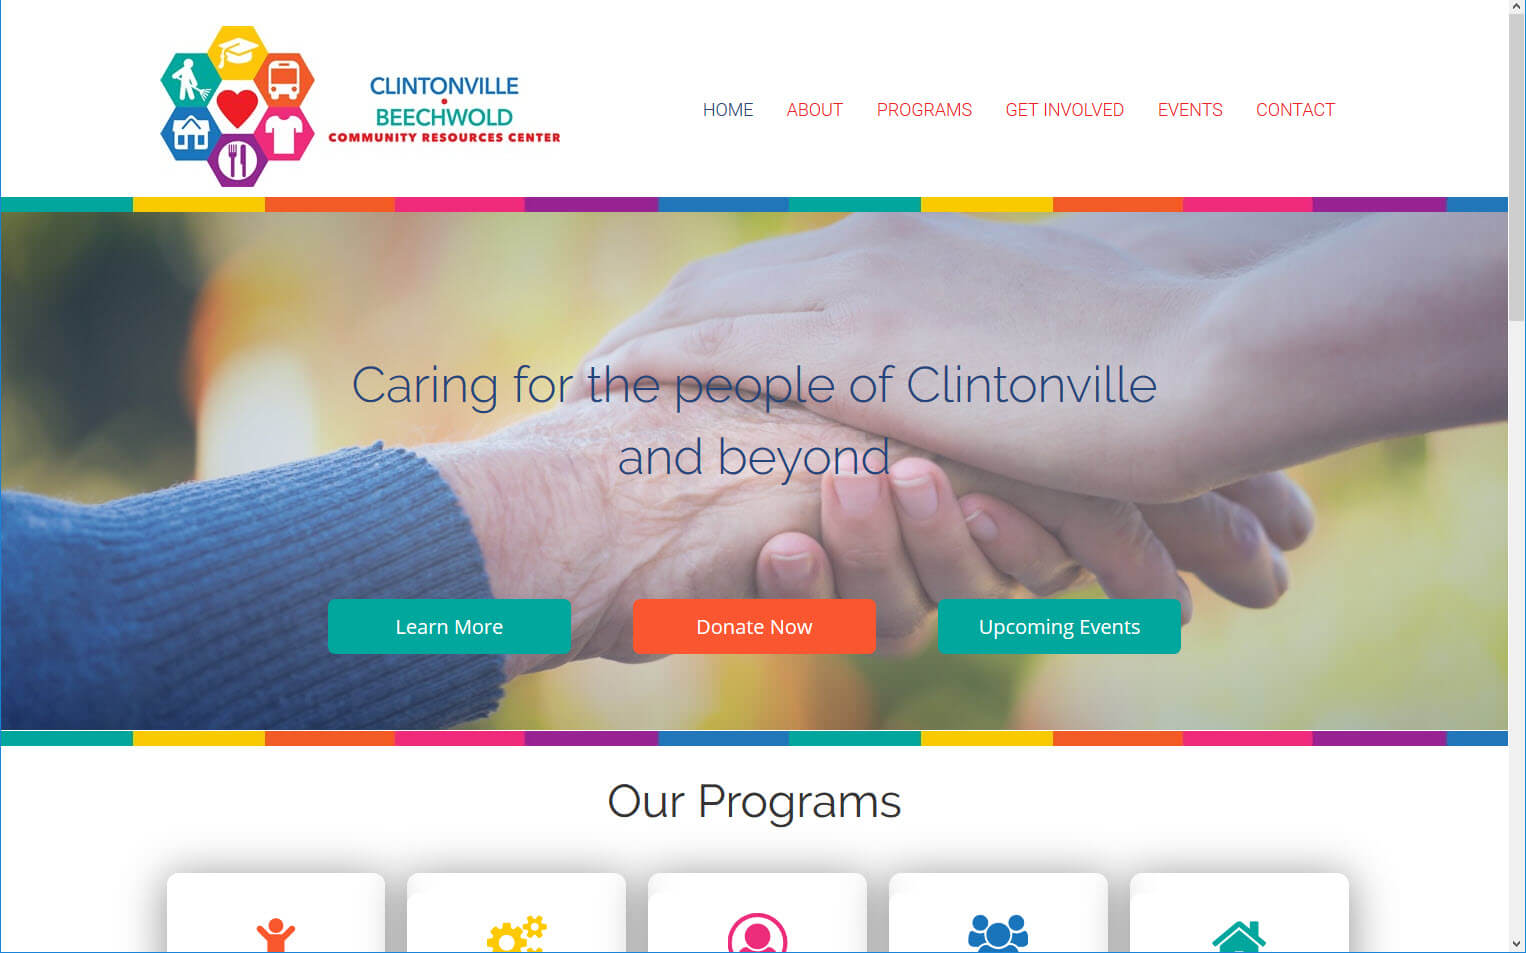 Clintonville Community Resources Center